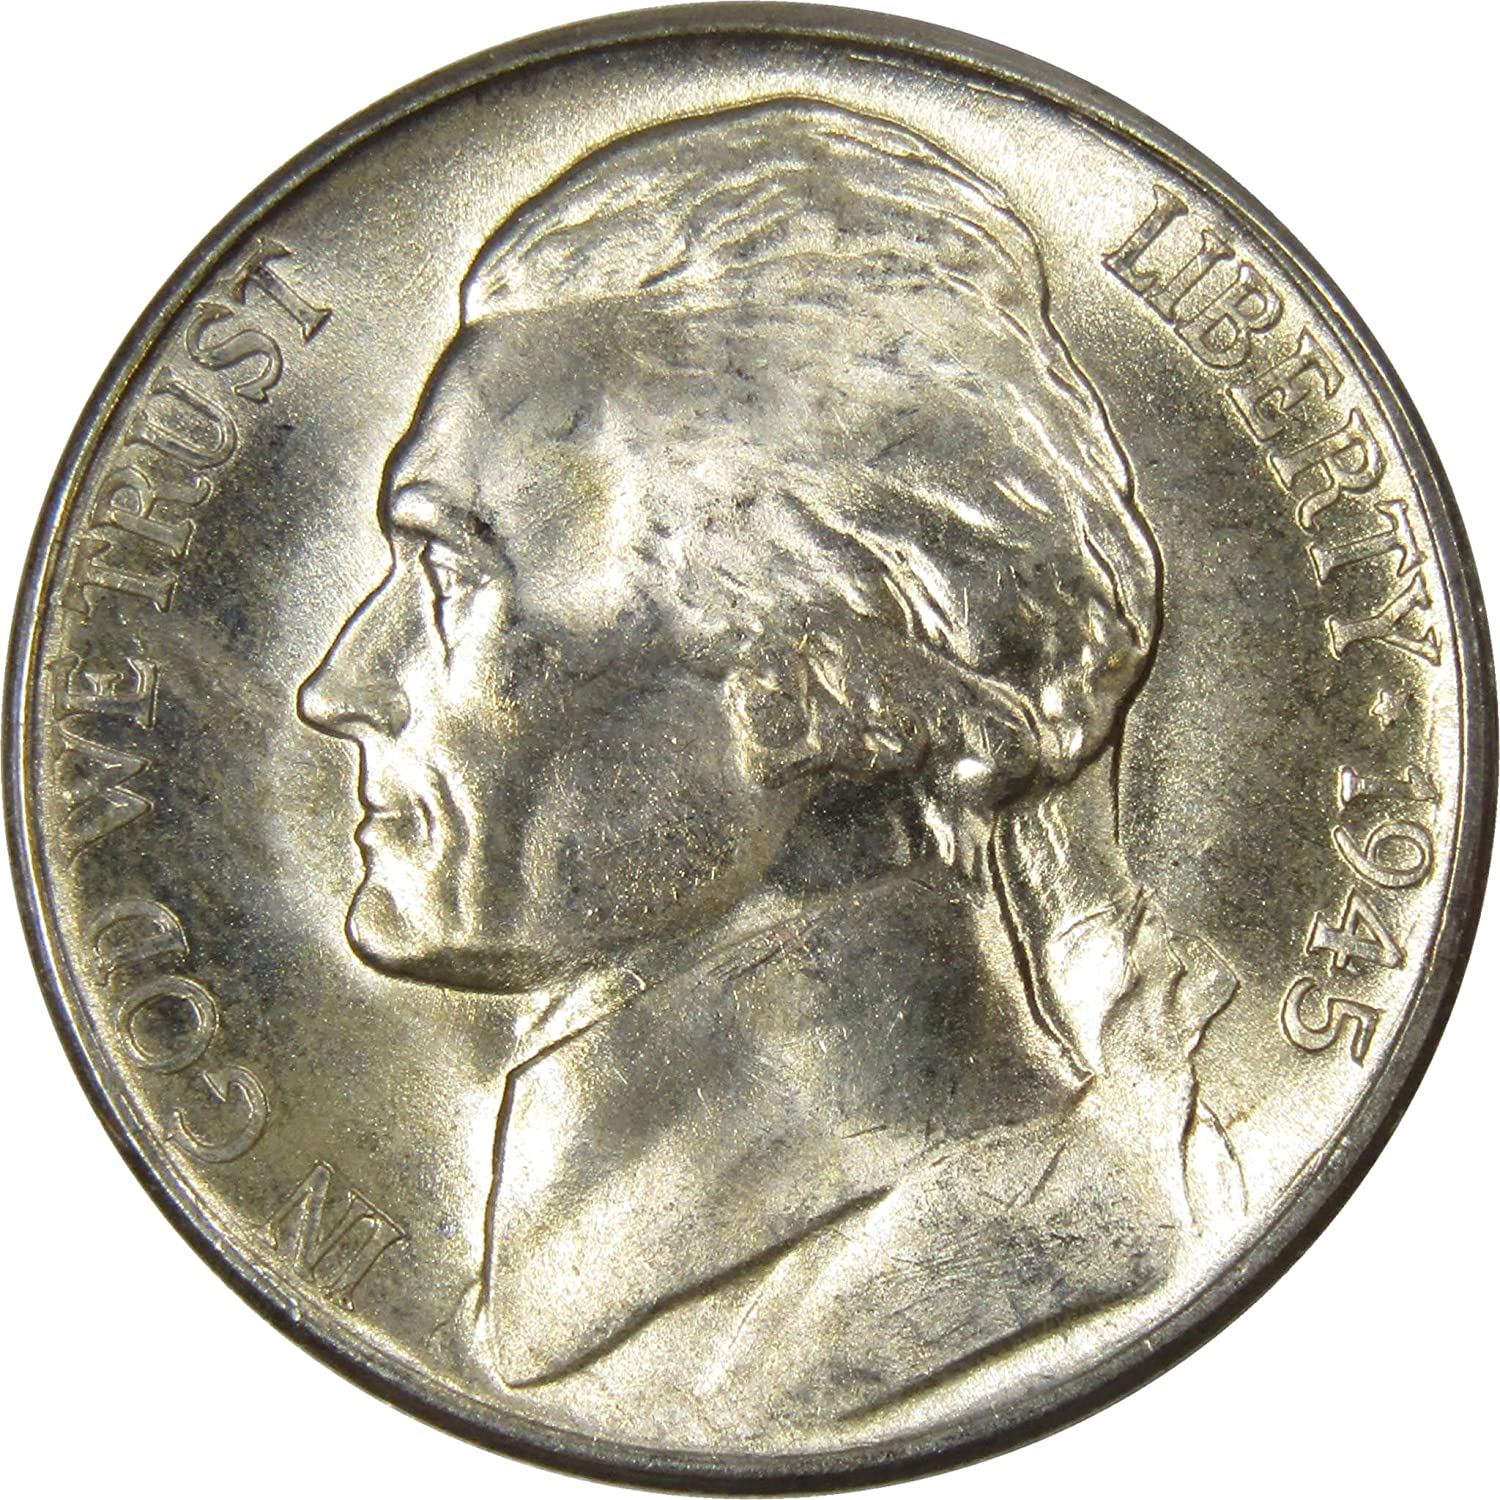 A 35 /% SILVER COIN 1945 S OR D Jefferson Nickel FREE SHIPPING!